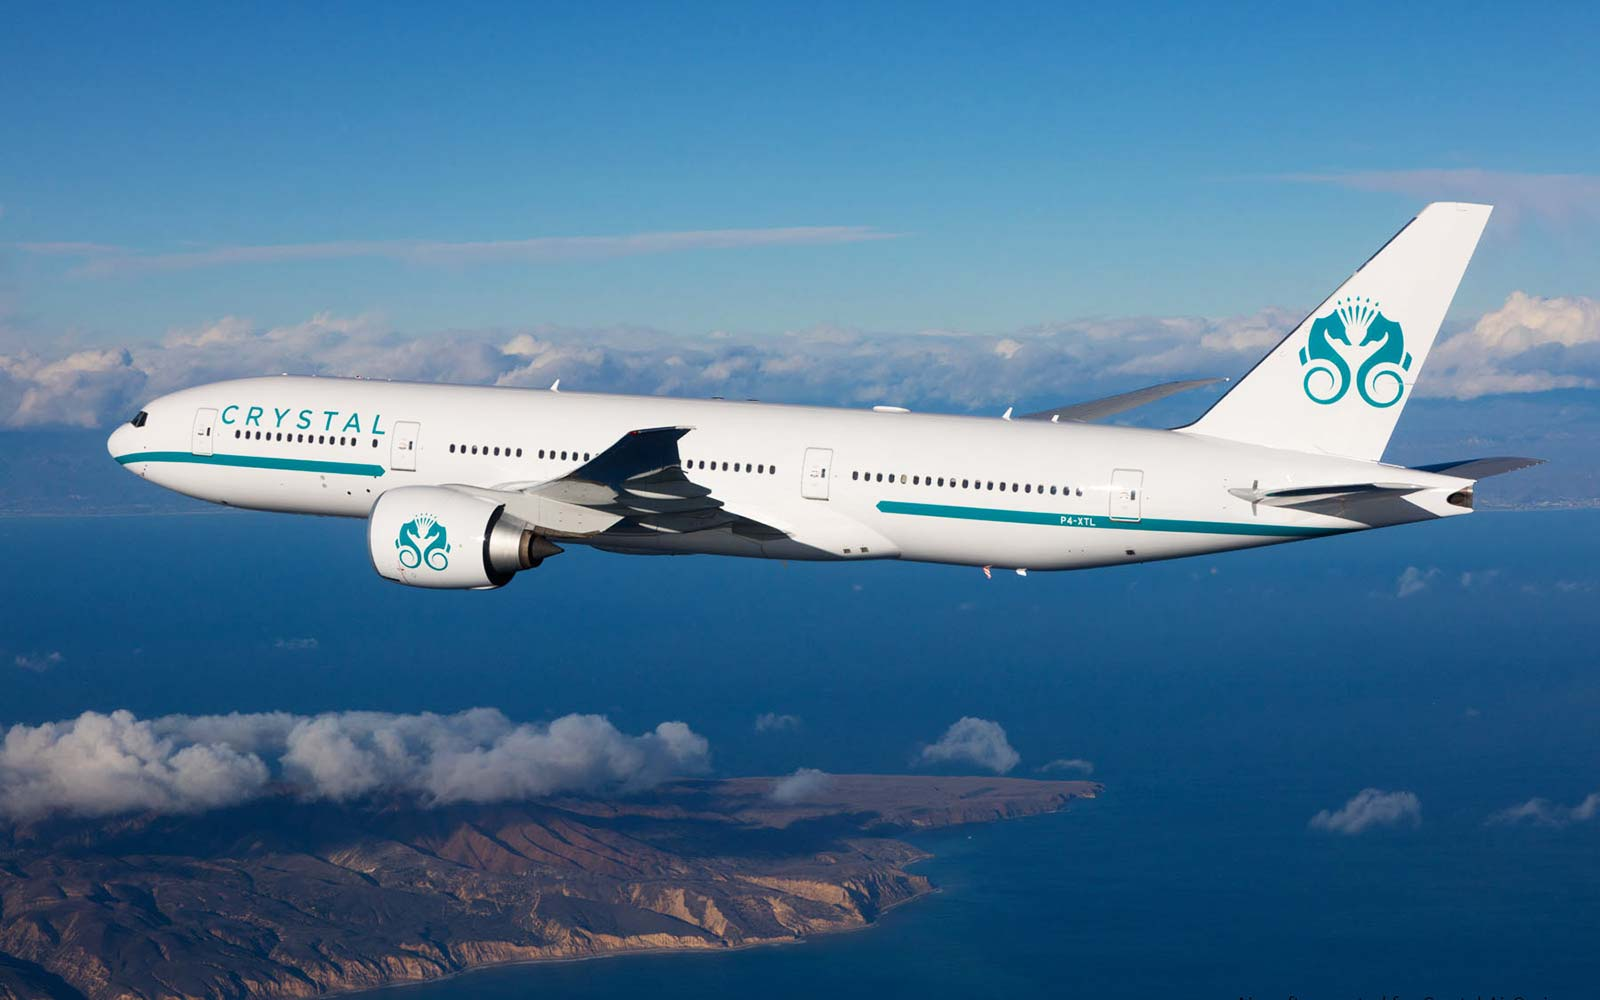 How to Charter a Private Boeing 777 for Your Next Dream Vacation